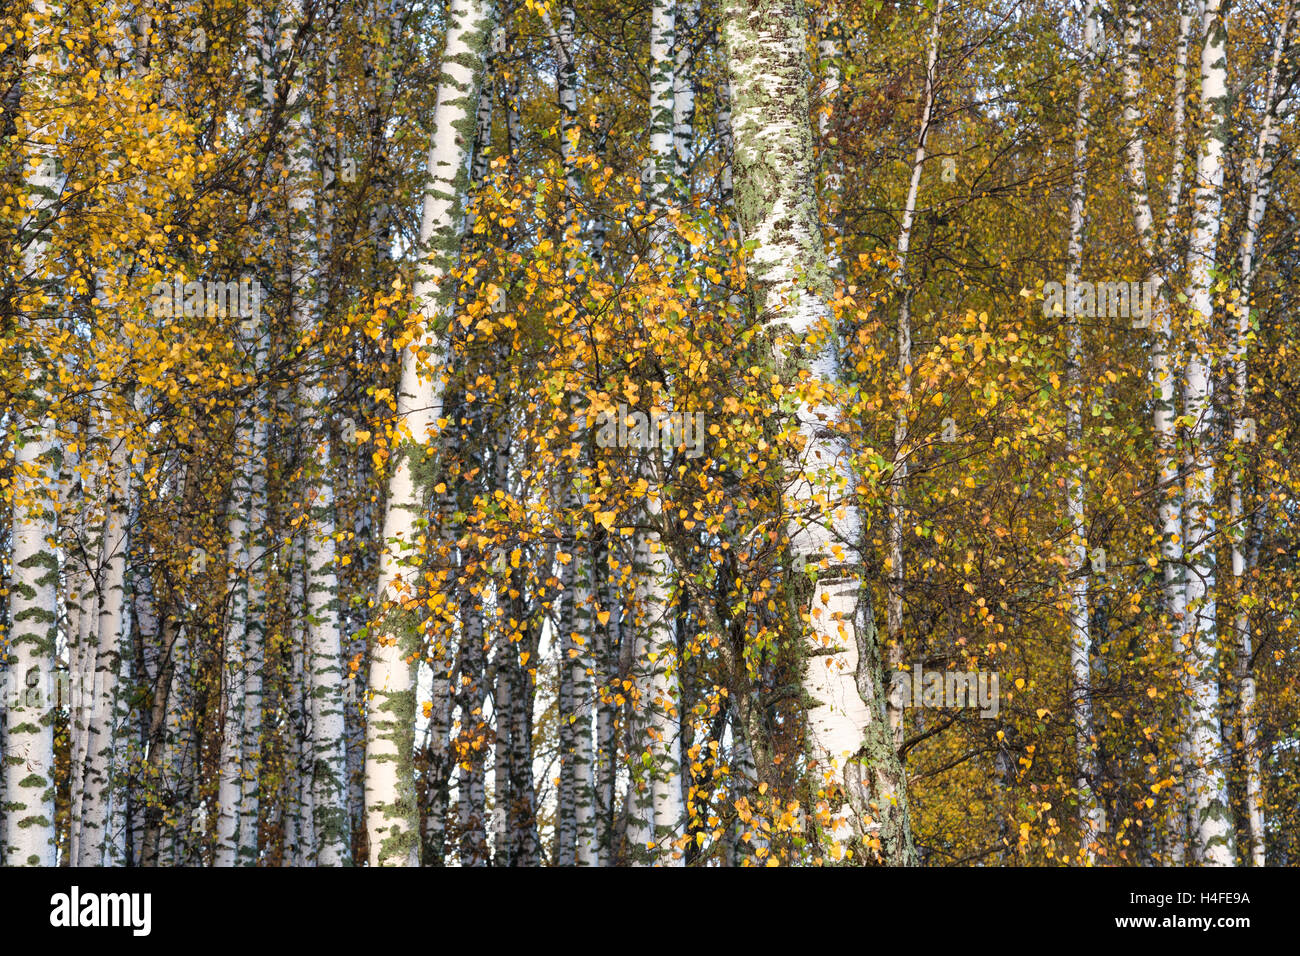 Autumn forest with birch trees - Stock Image